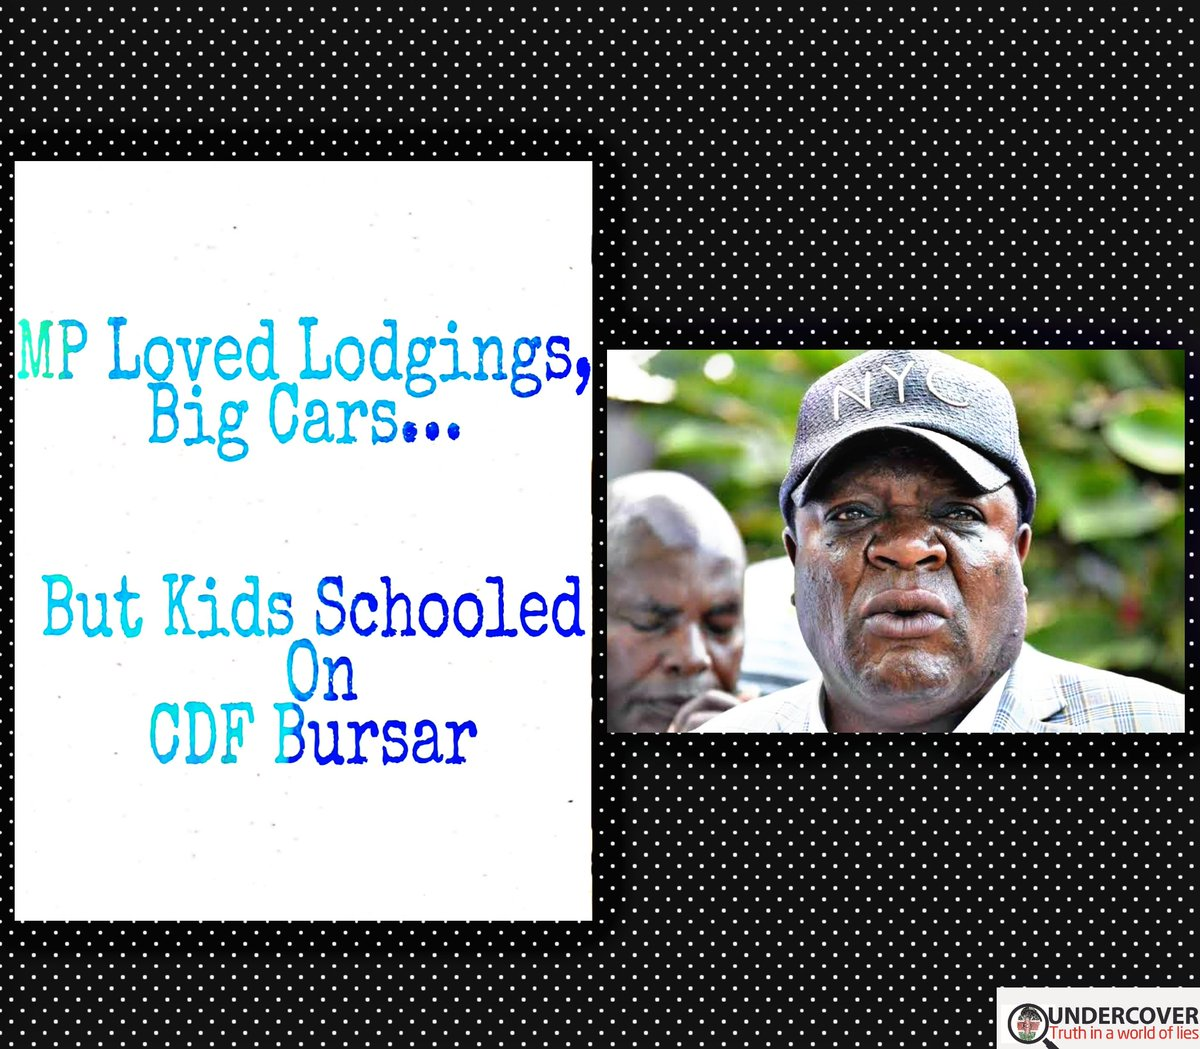 Justus Murunga: MP Loved Lodgings, Big Cars… But Kids Schooled On CDF  He preferred sleeping in lodgings, didn't care much about dressing, but had no qualms exchanging Land Cruisers thrice in a year...https://t.co/KEbbLy7Zk8 https://t.co/bk819cx9B9